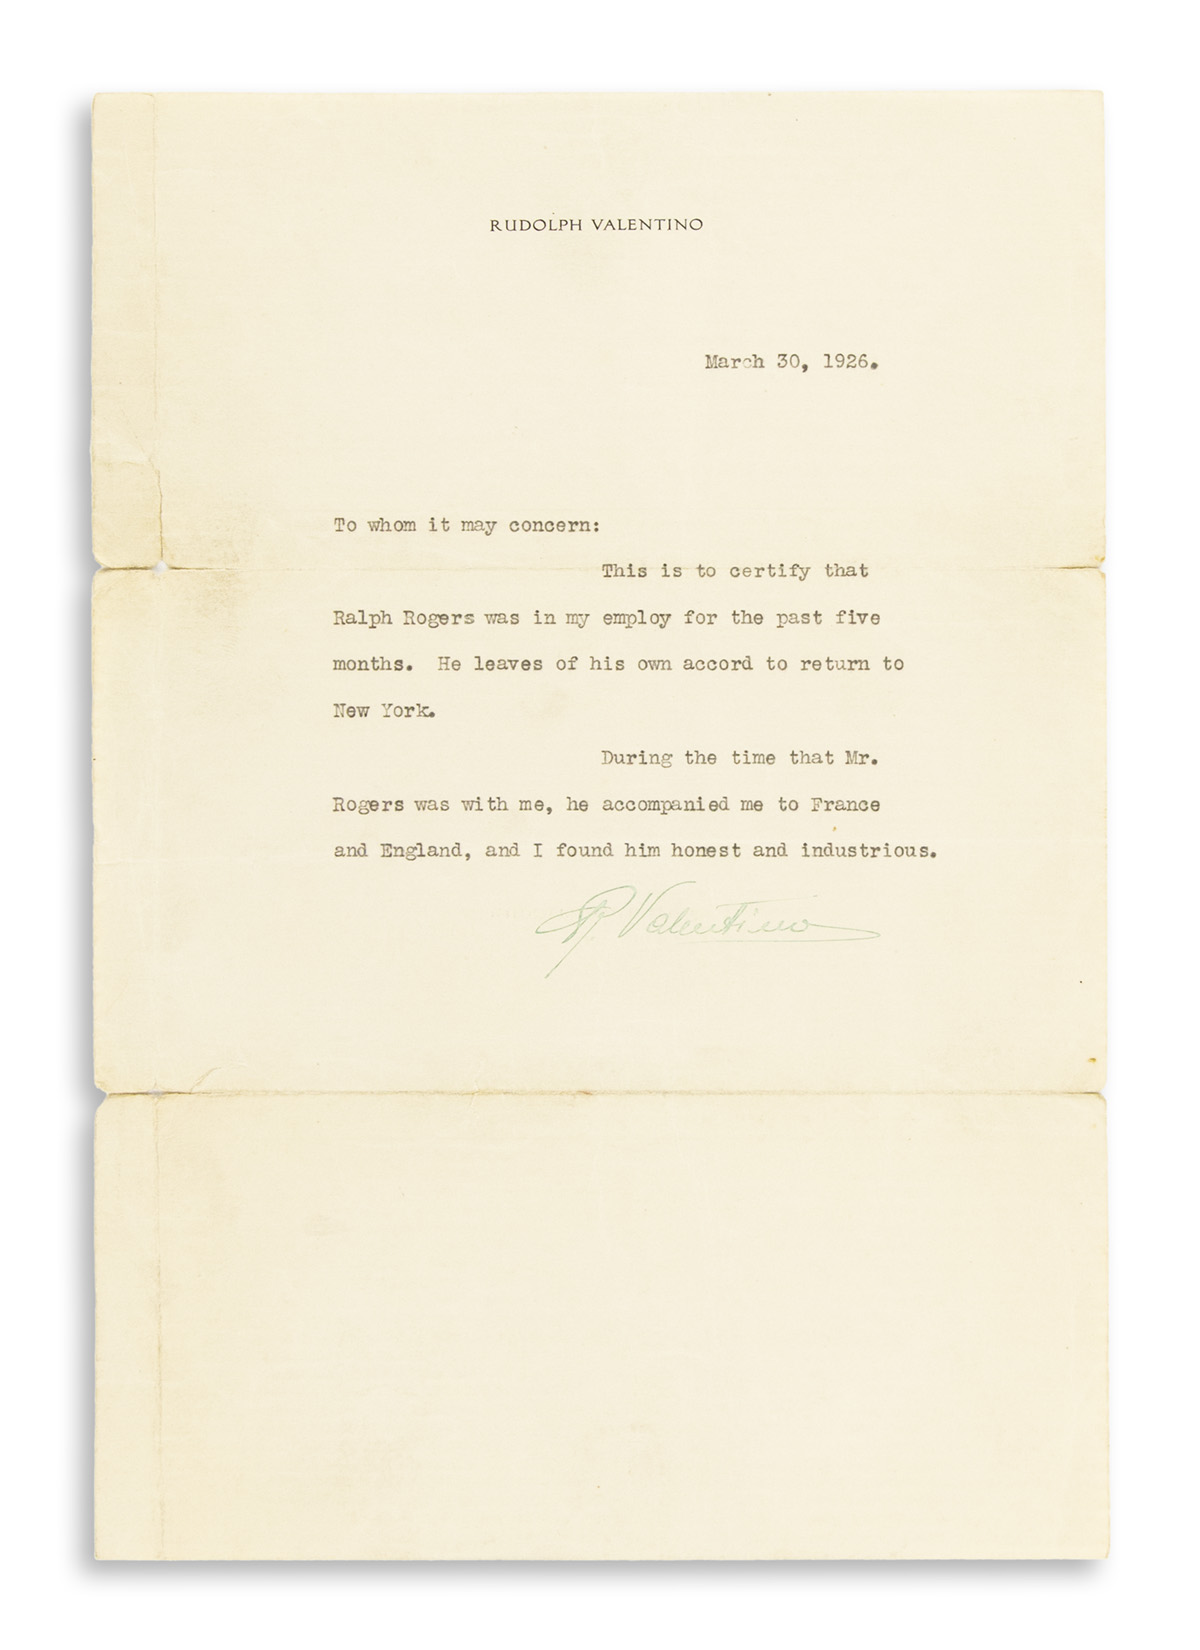 VALENTINO-RUDOLPH-Typed-Letter-Signed-R-Valentino-in-green-i